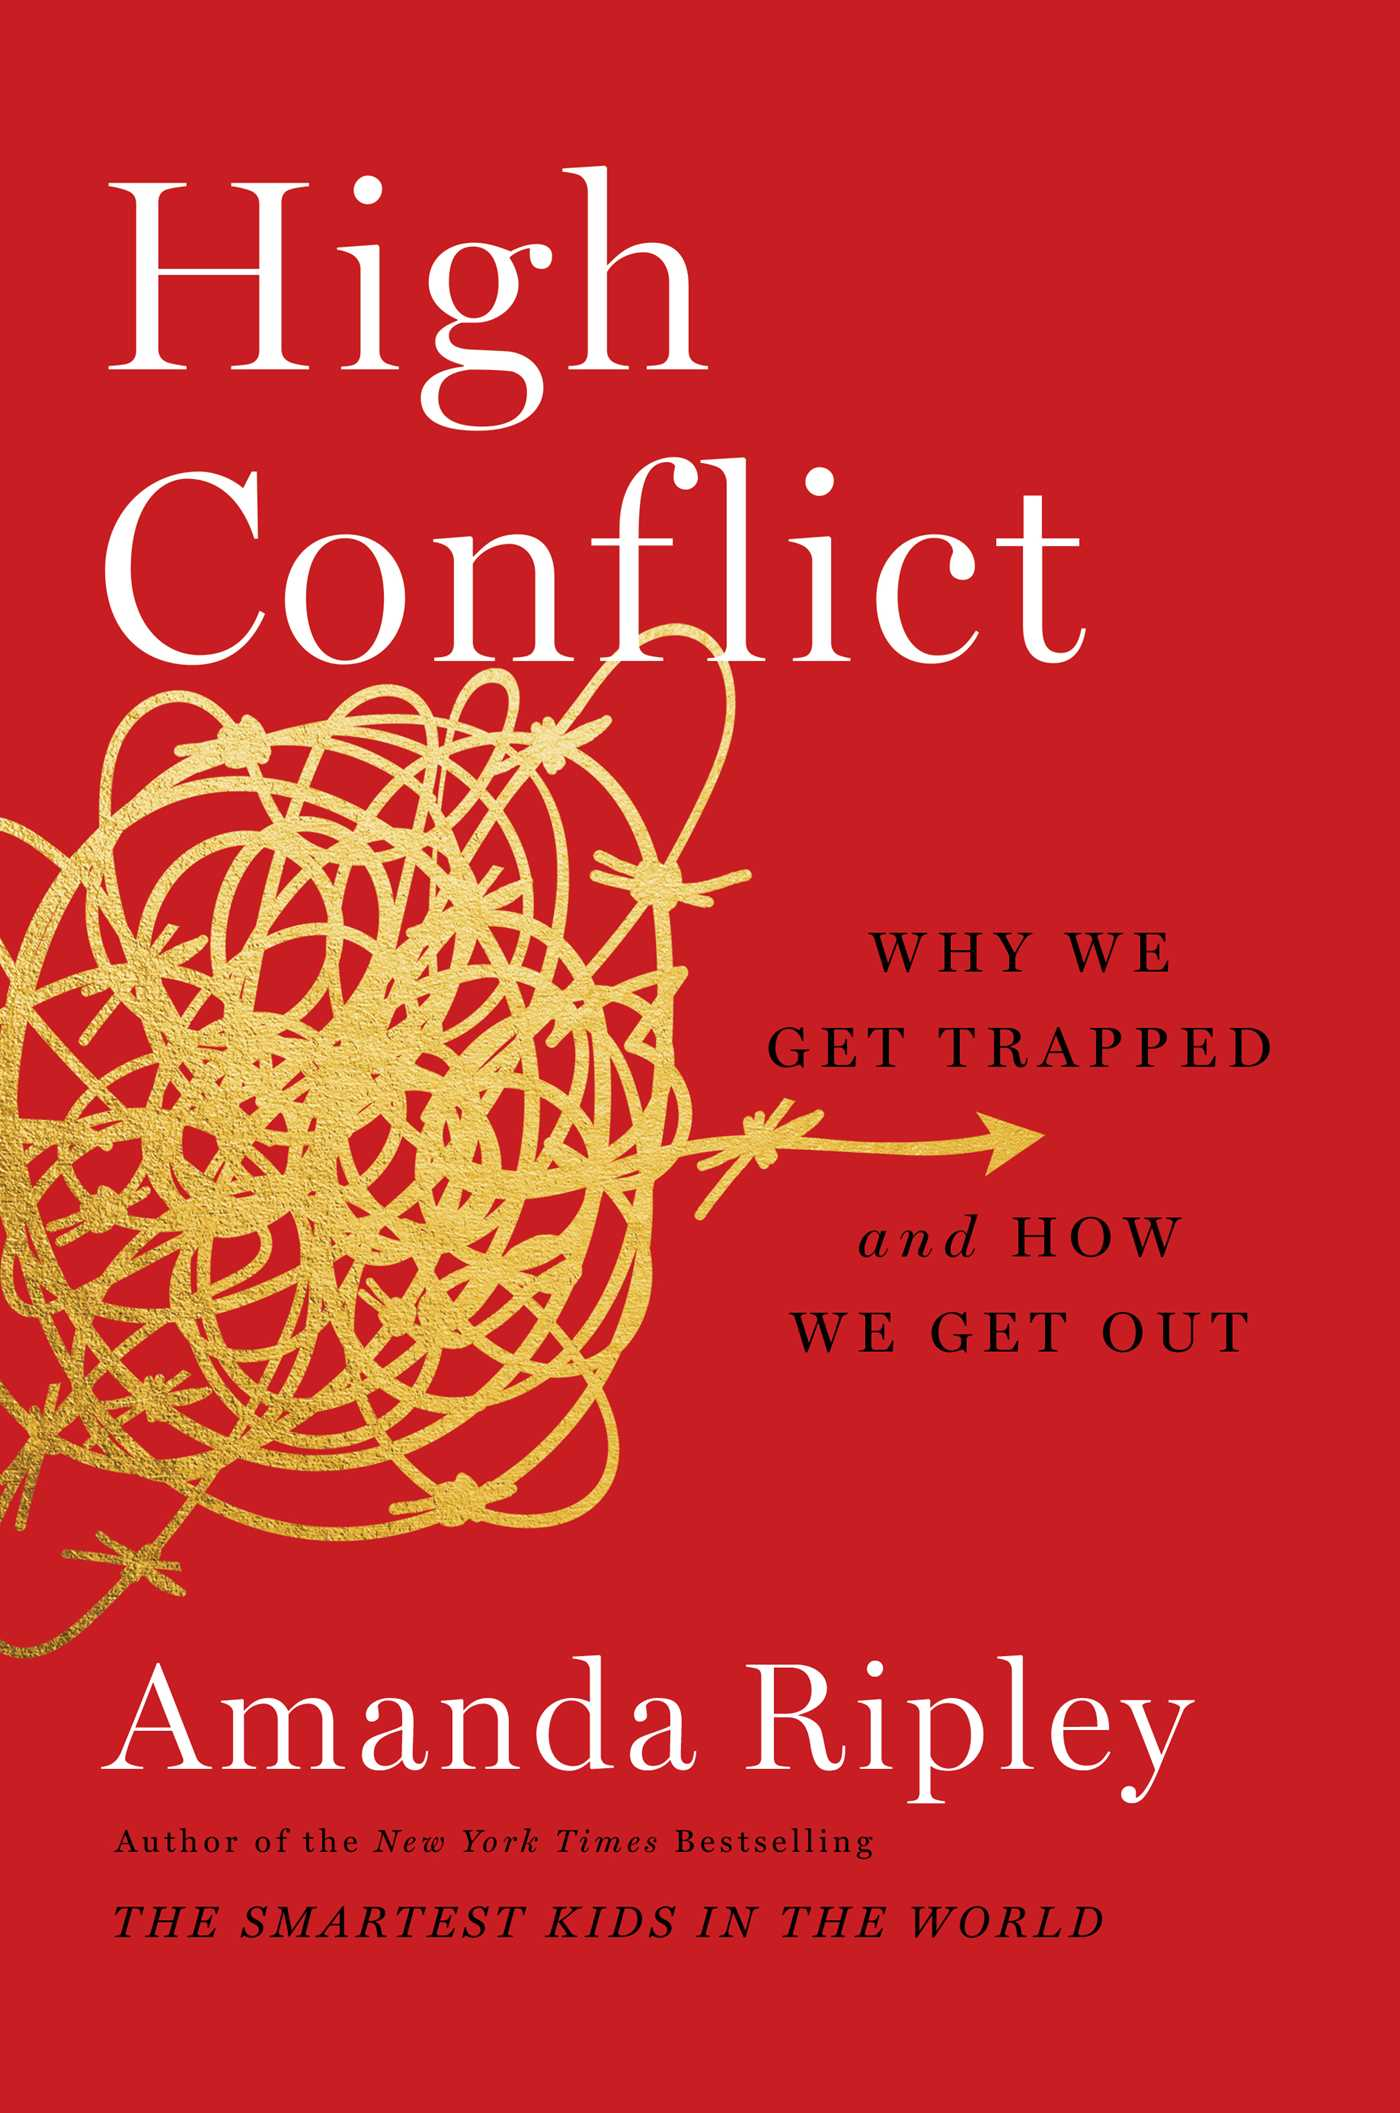 High Conflict   Book by Amanda Ripley   Official Publisher Page   Simon &  Schuster